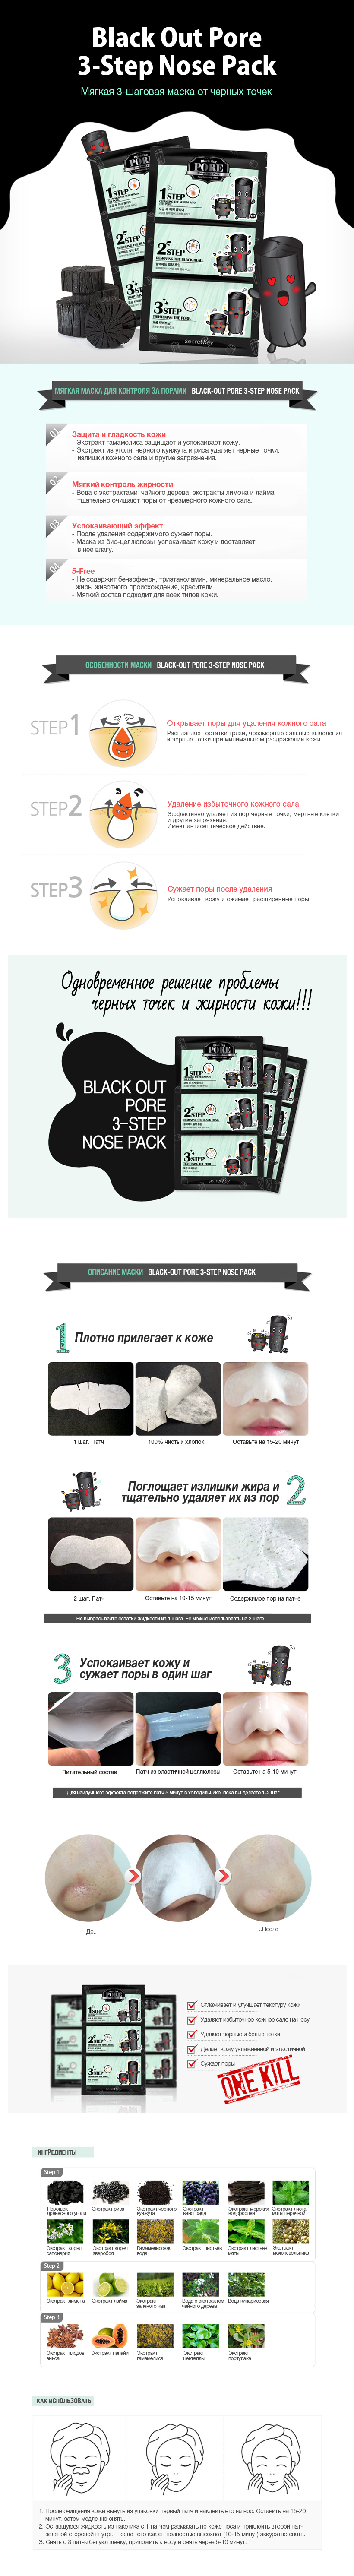 Black Out Pore 3 Step Nose Pack